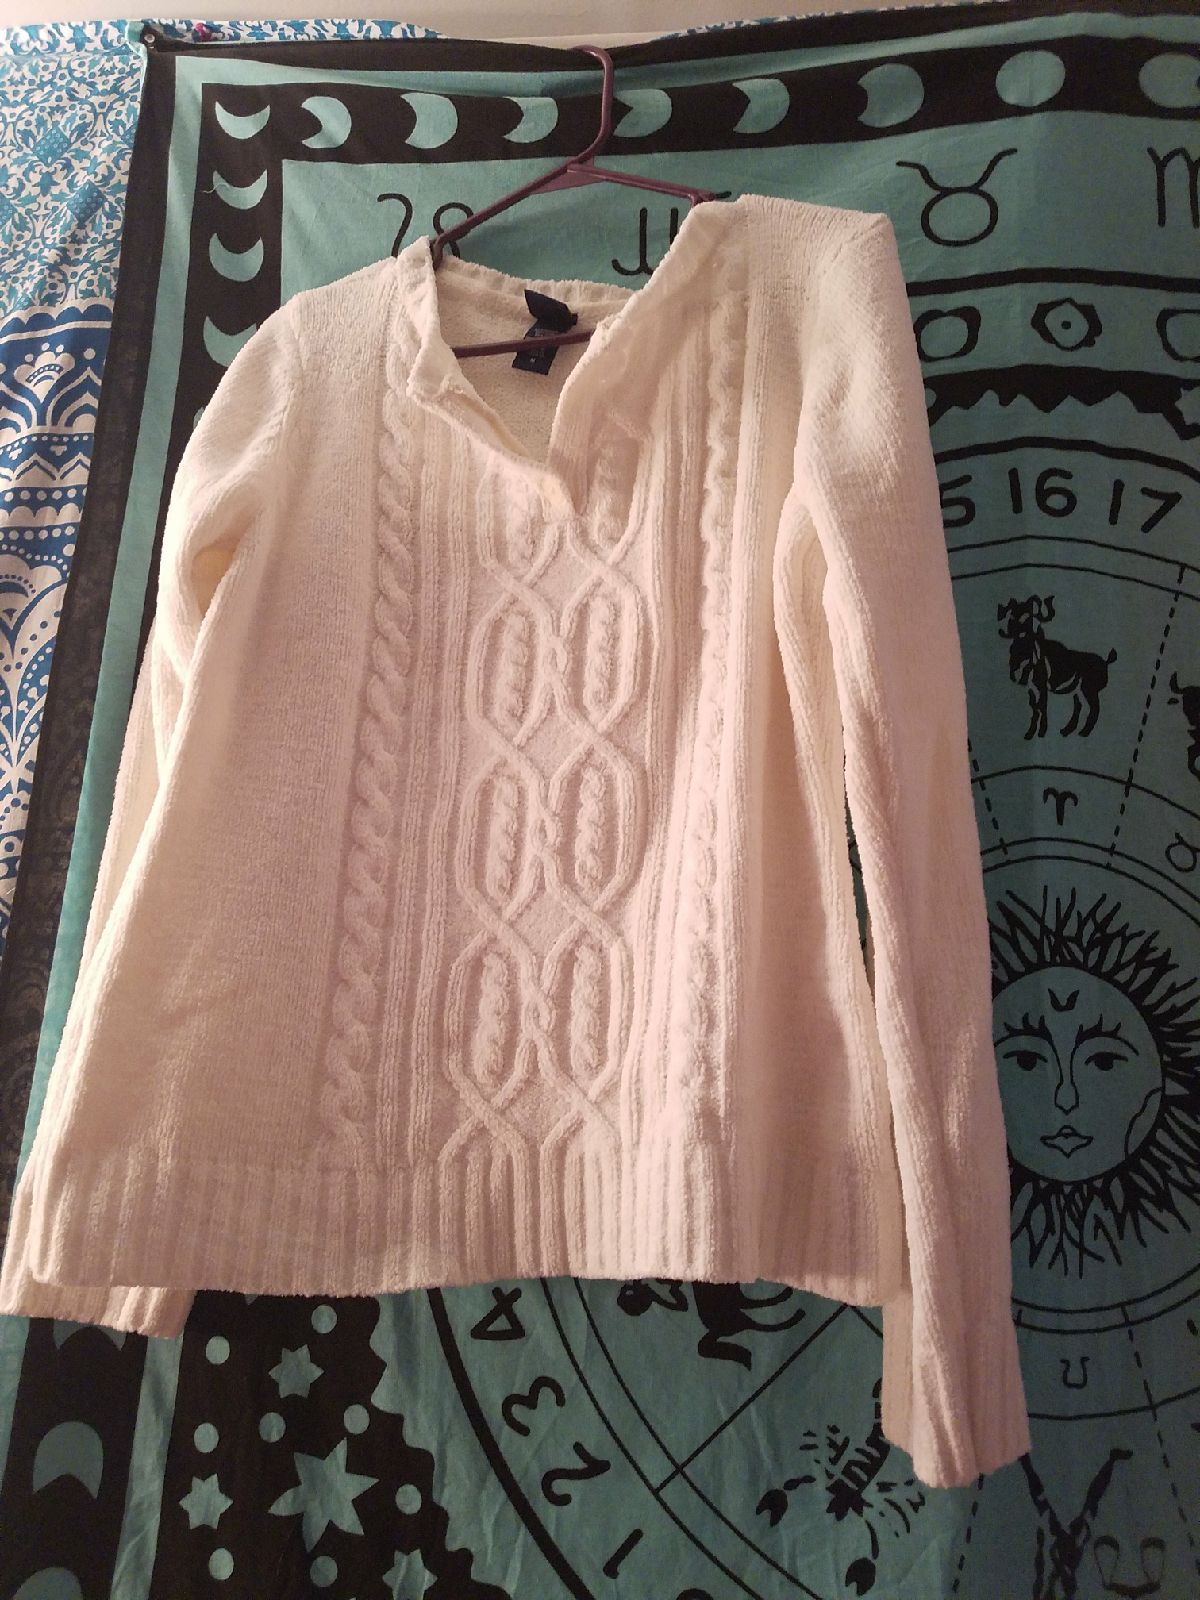 super soft white sweater - Mercari: BUY & SELL THINGS YOU LOVE